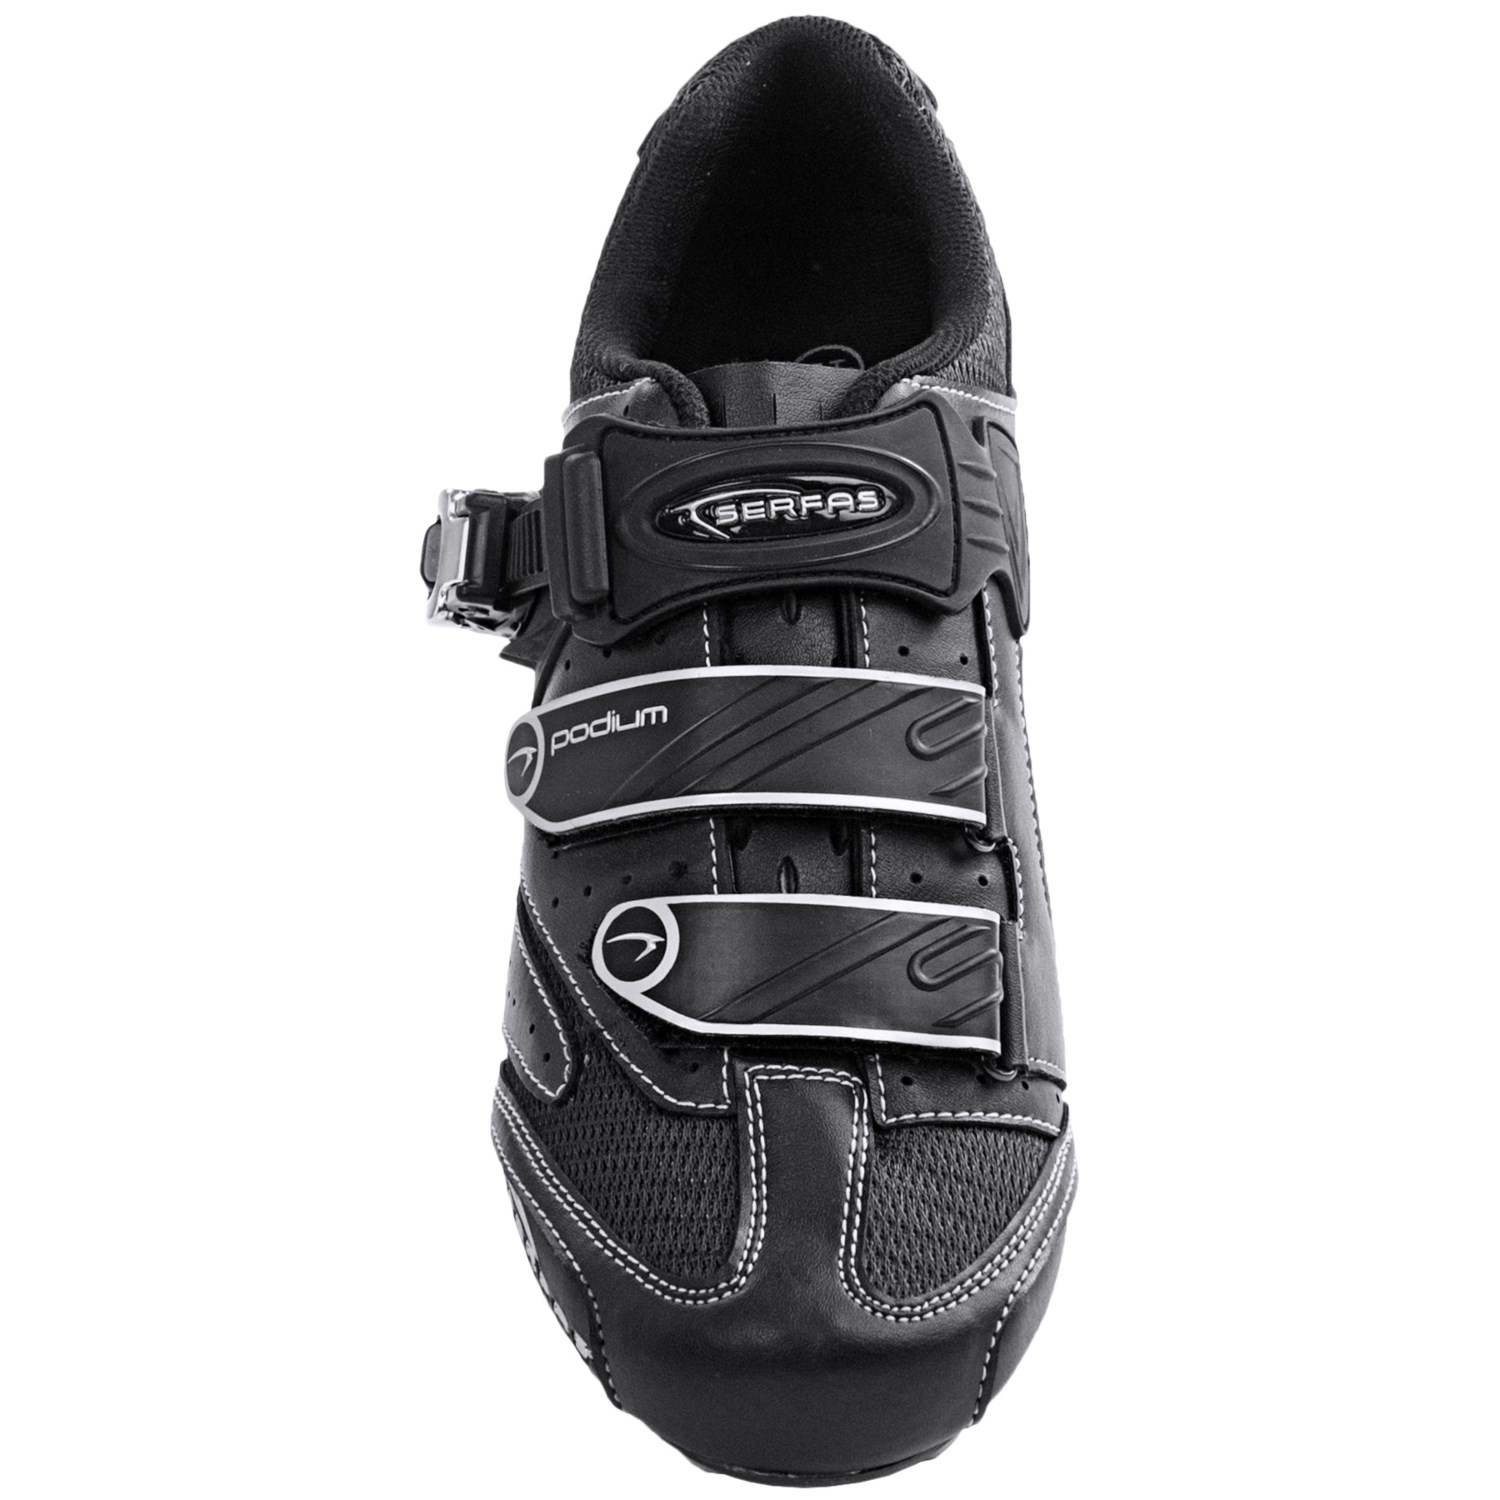 Serfas Podium Road Cycling Shoes Review